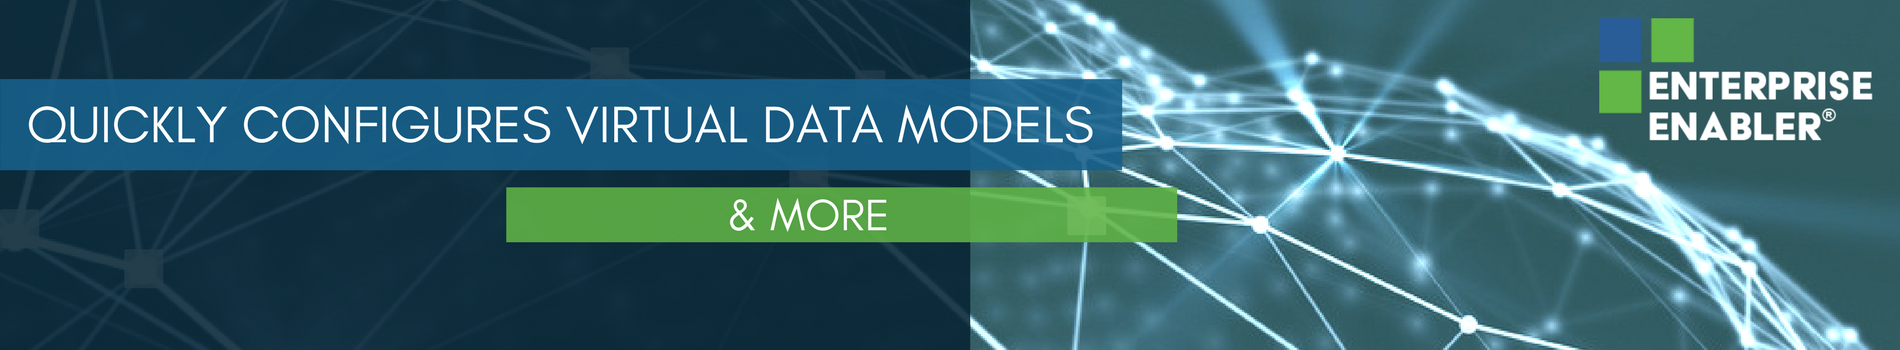 Quickly configures virtual data models